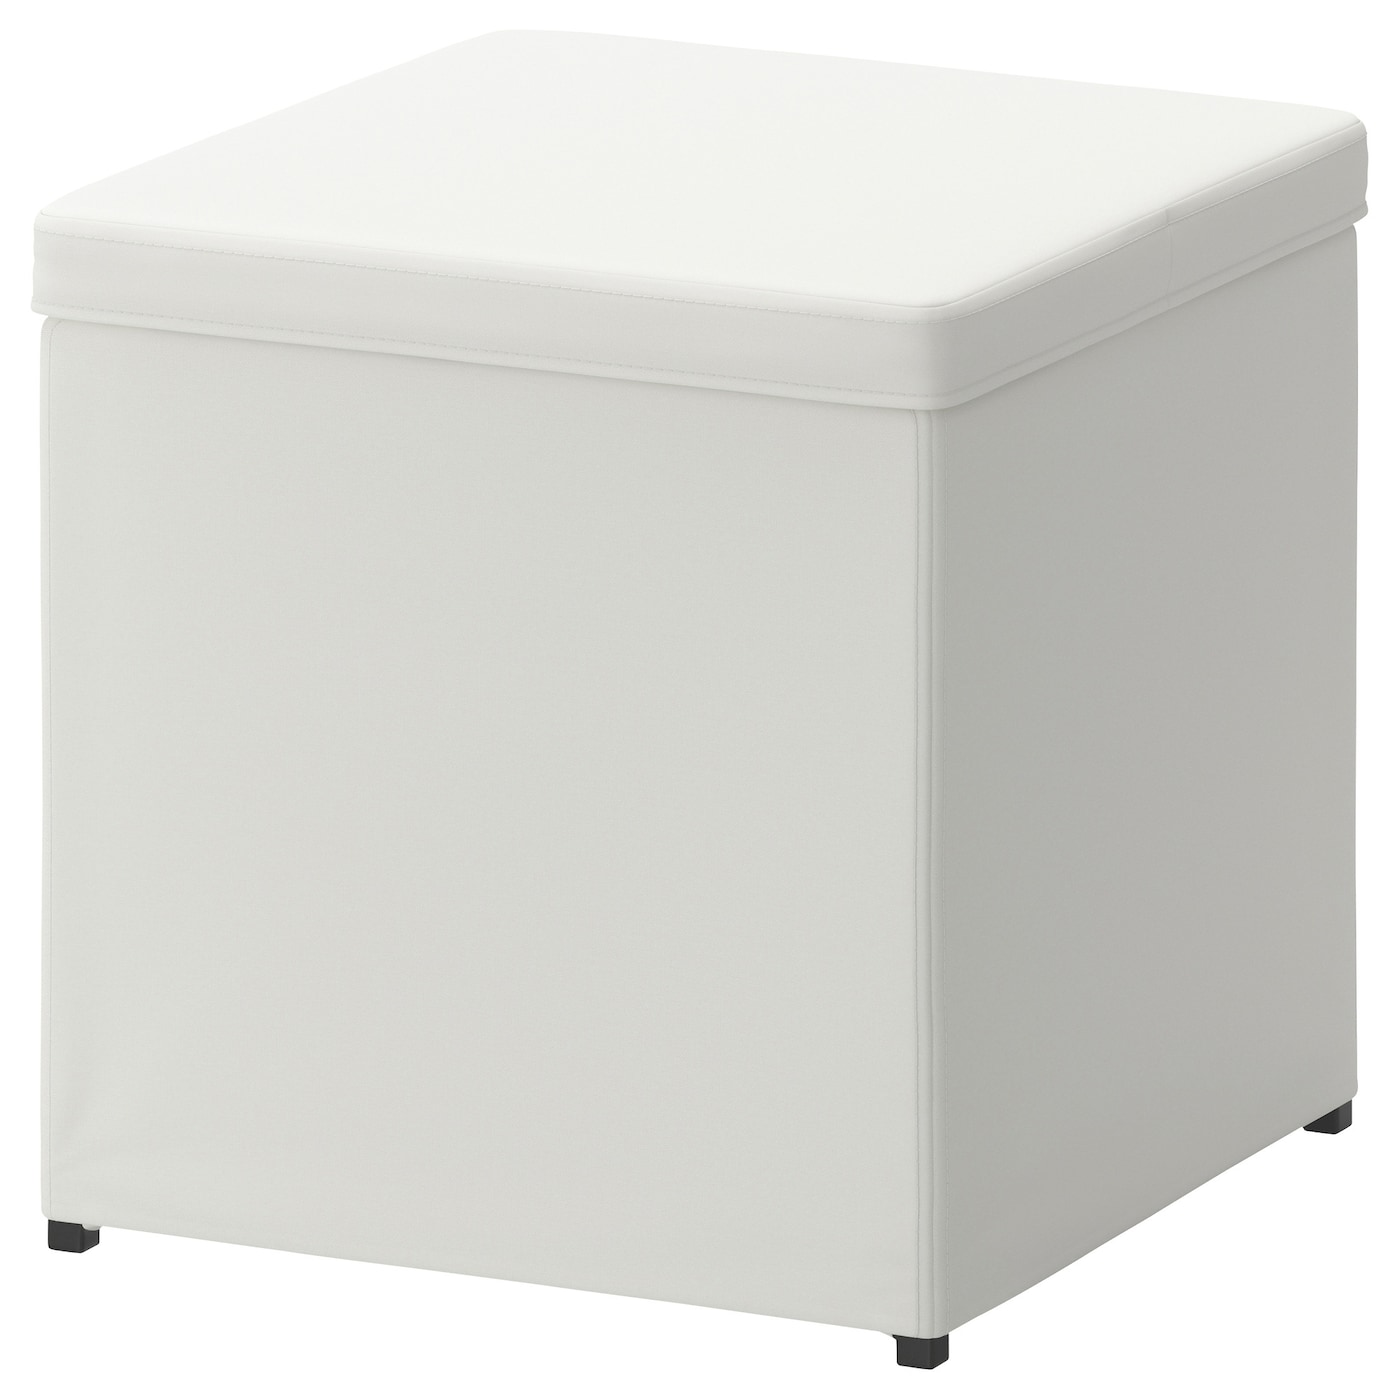 Genial IKEA BOSNÄS Footstool With Storage Works As An Extra Seat Or Footstool.